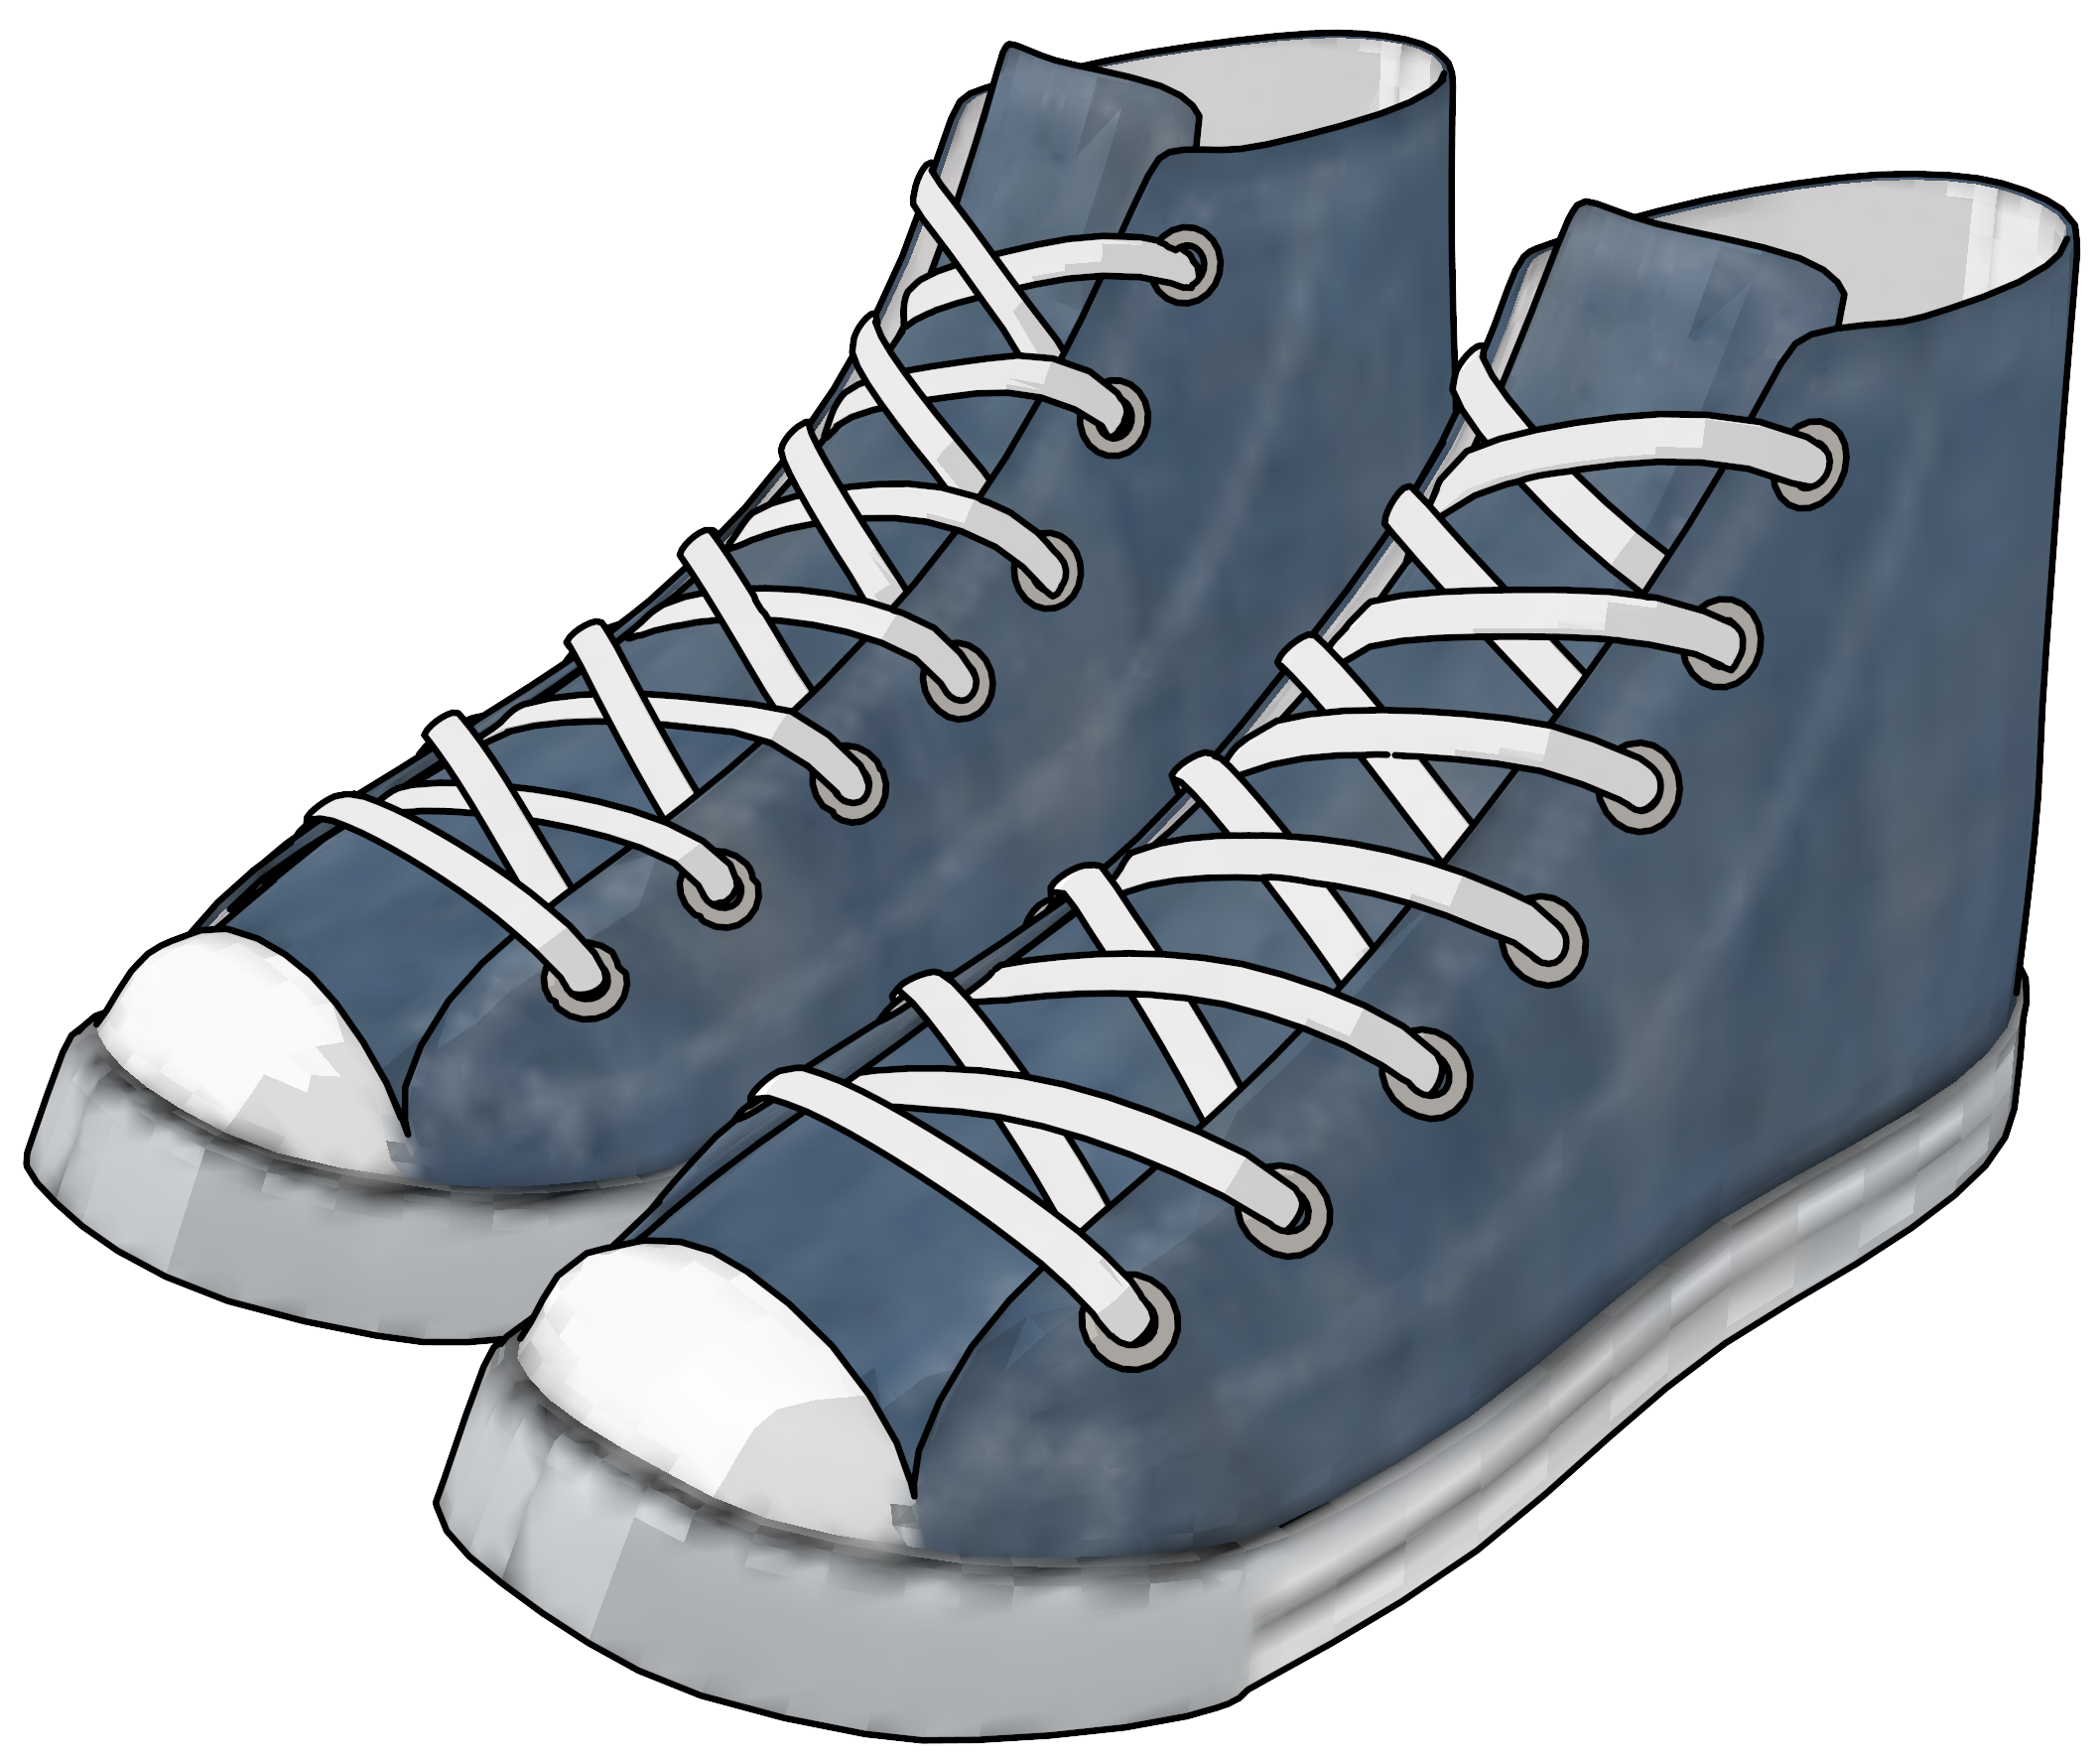 image transparent library Sneakers shoes png clipartly. Converse clipart big shoe